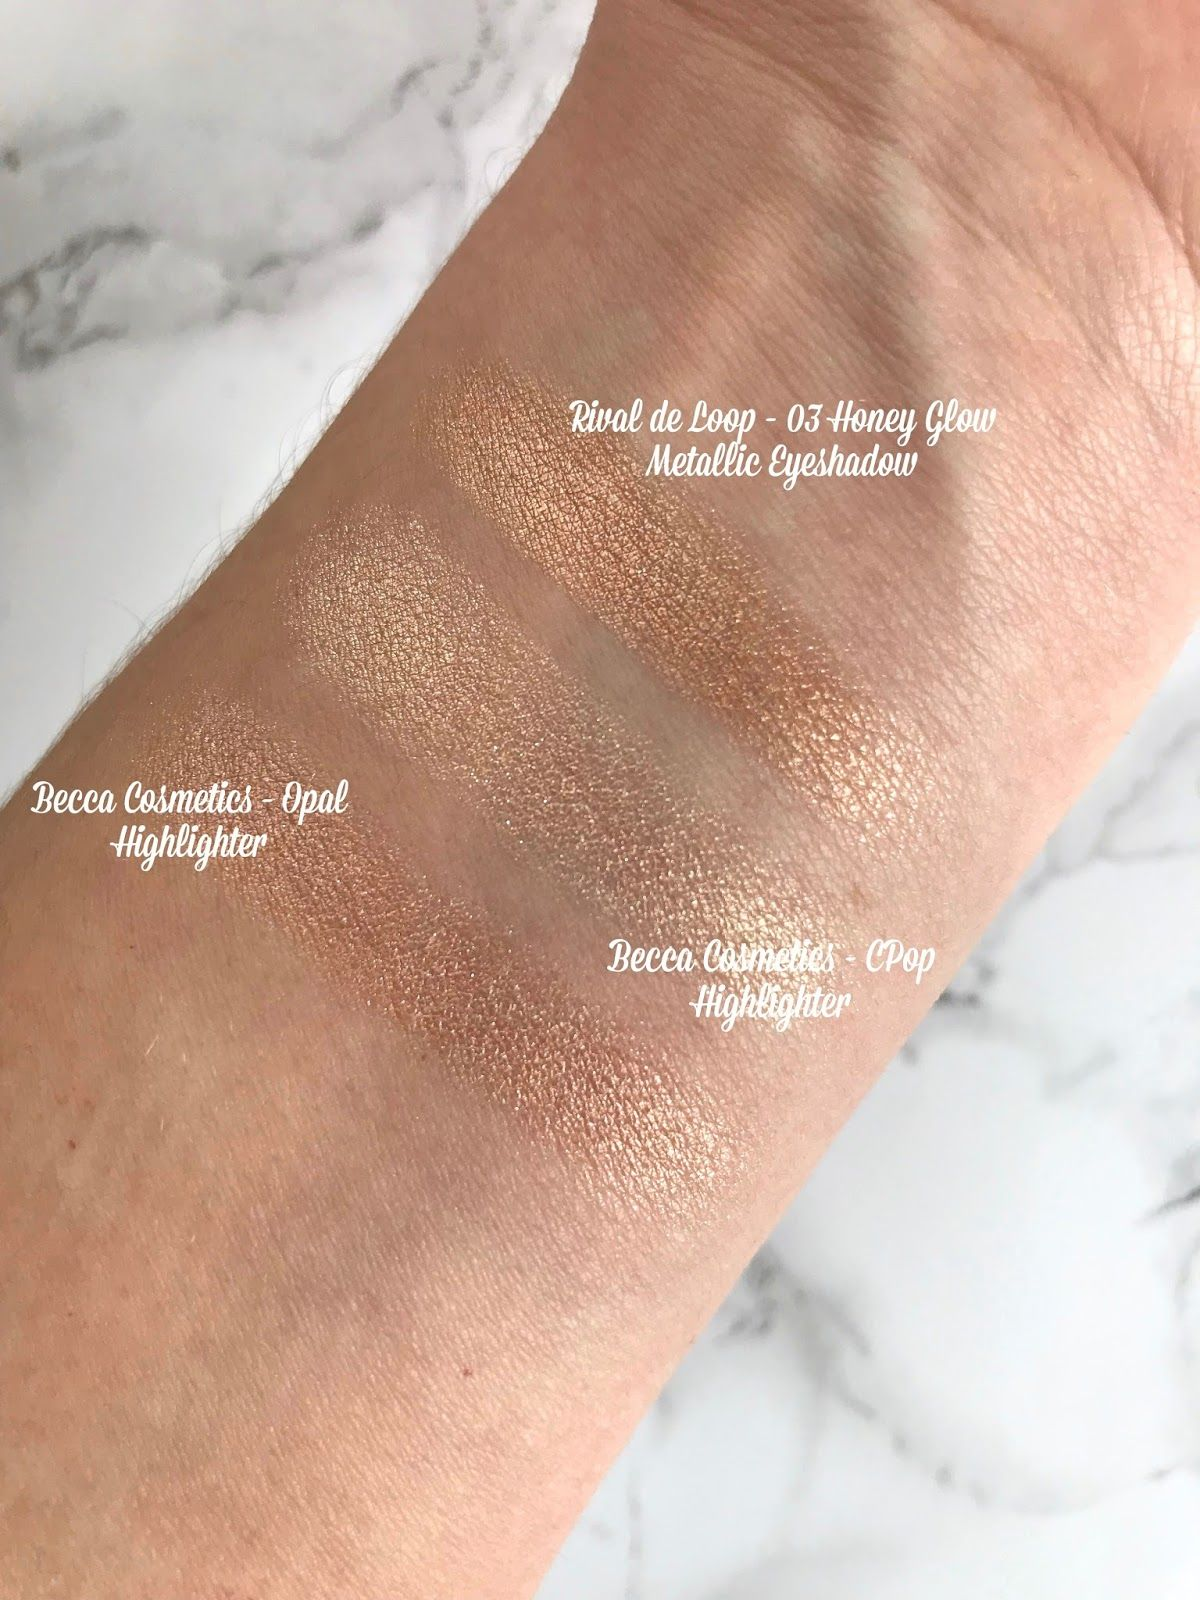 Becca Cosmetics CPop Champagne Pop Highlighter Dupe Rival de Loop ...